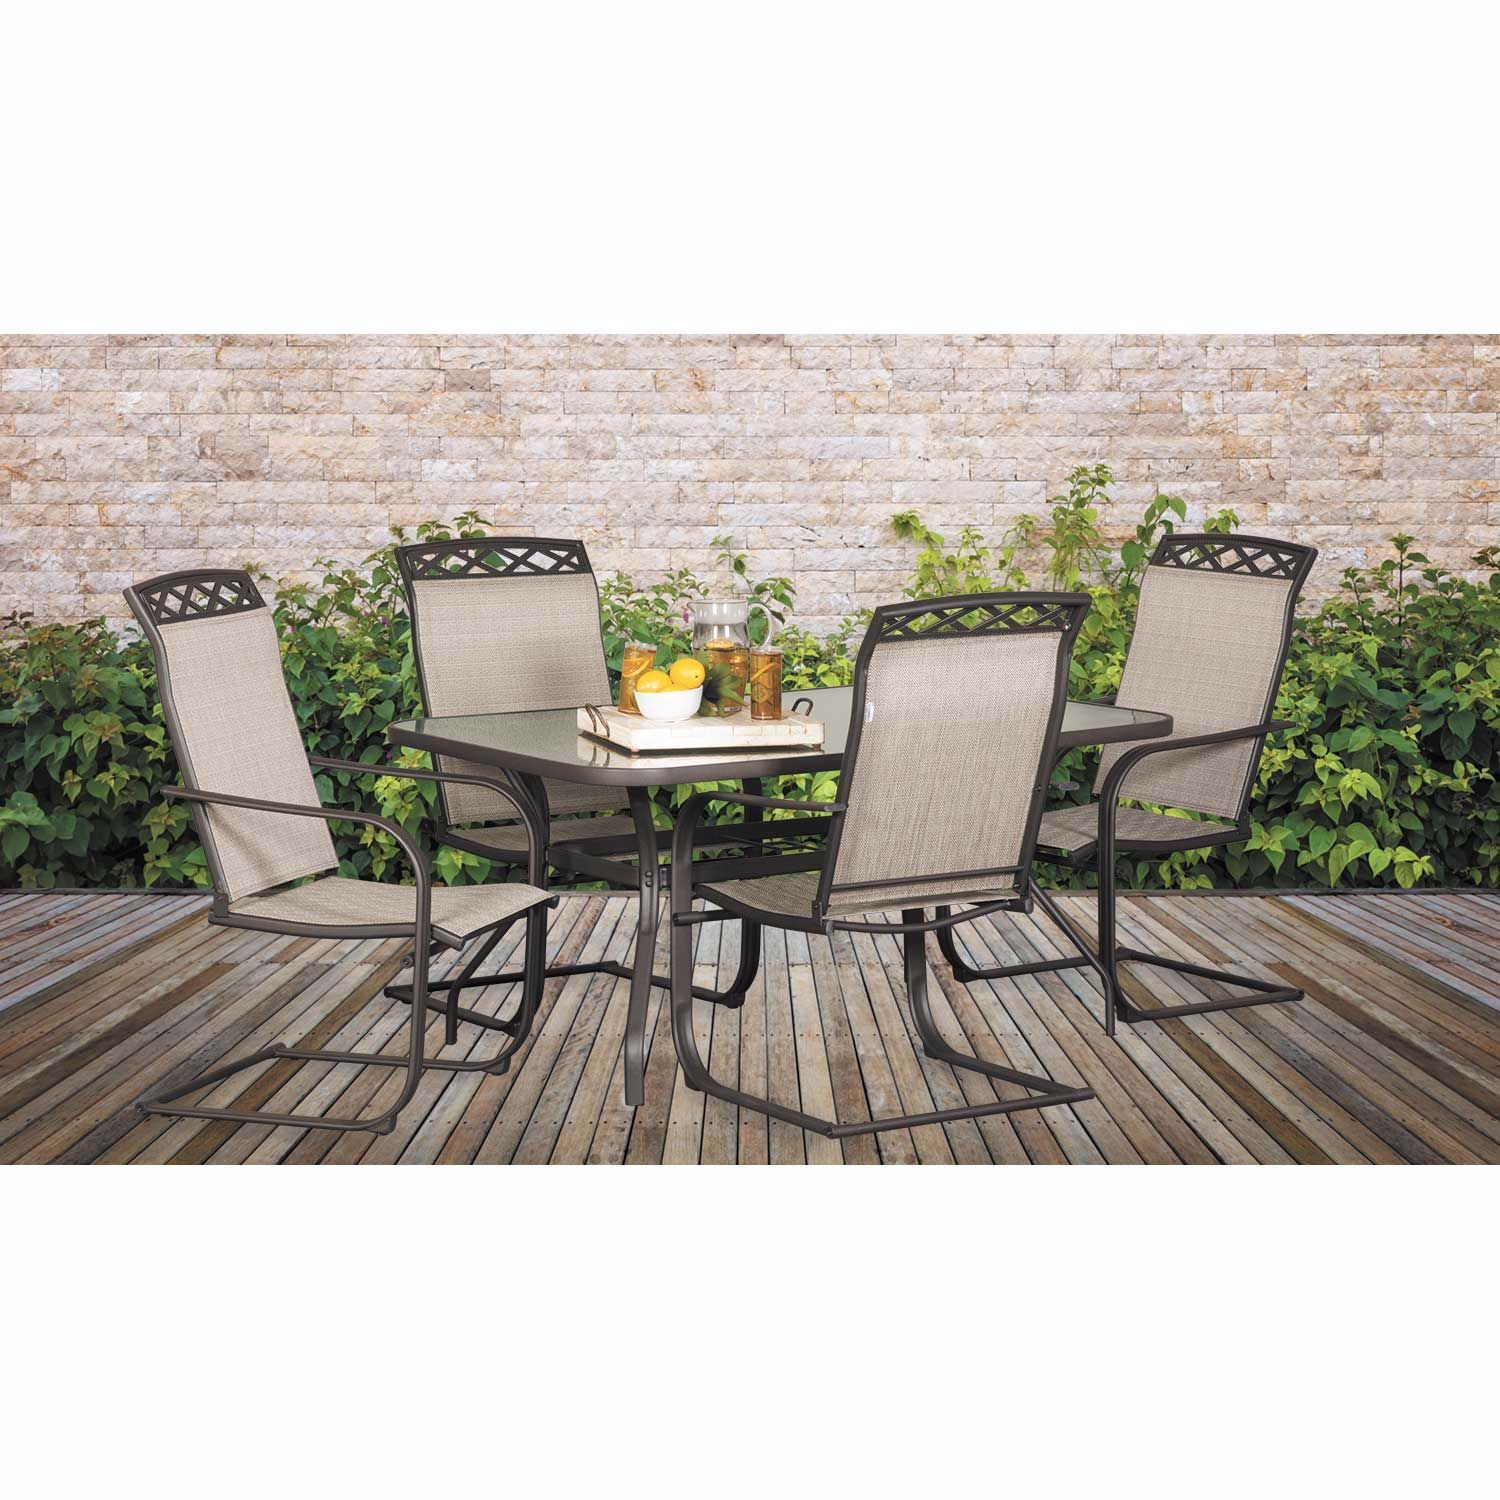 Picture of Covington Glass Top Patio Dining Table